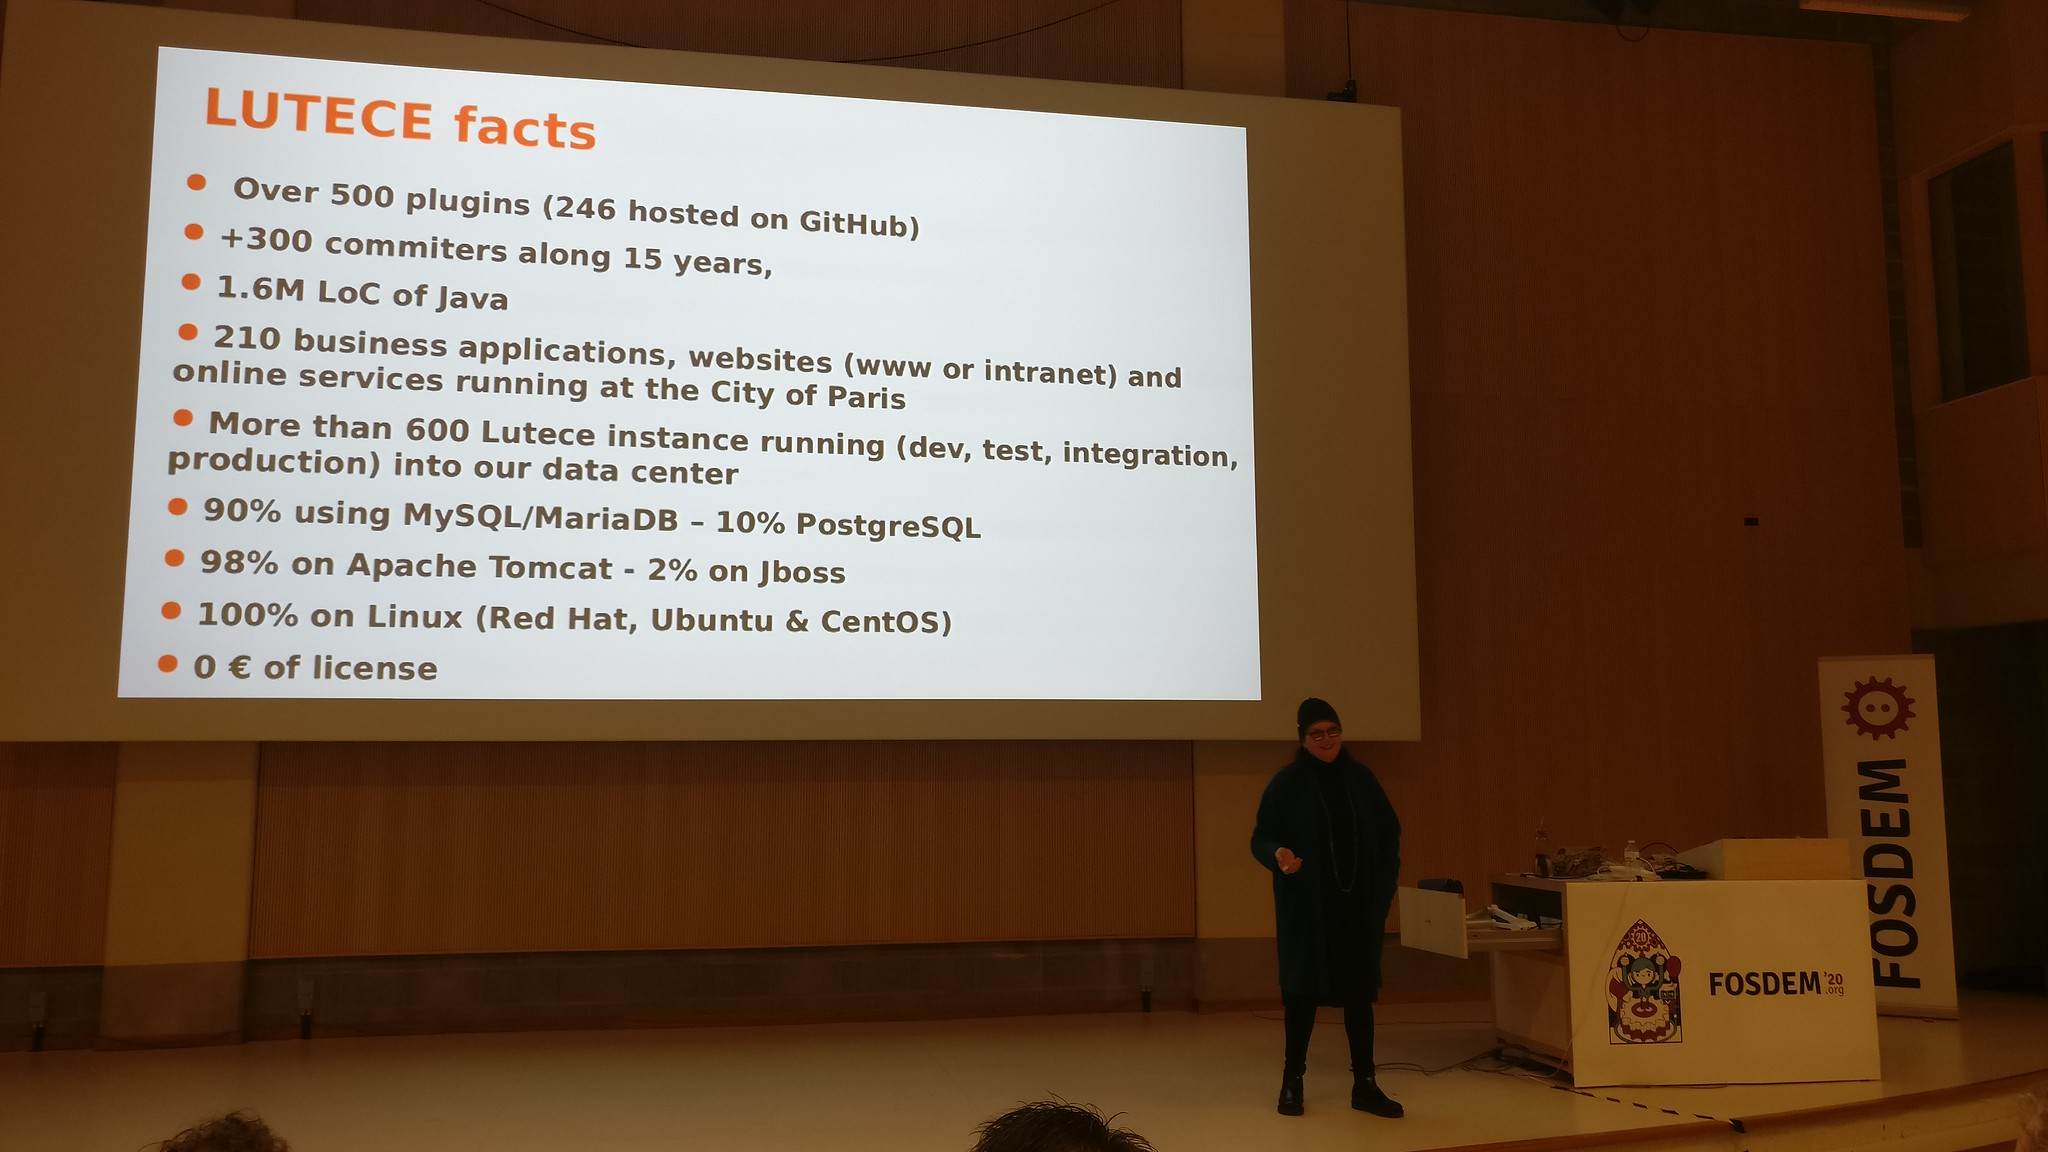 Lutèce facts presented in FOSDEM 2020